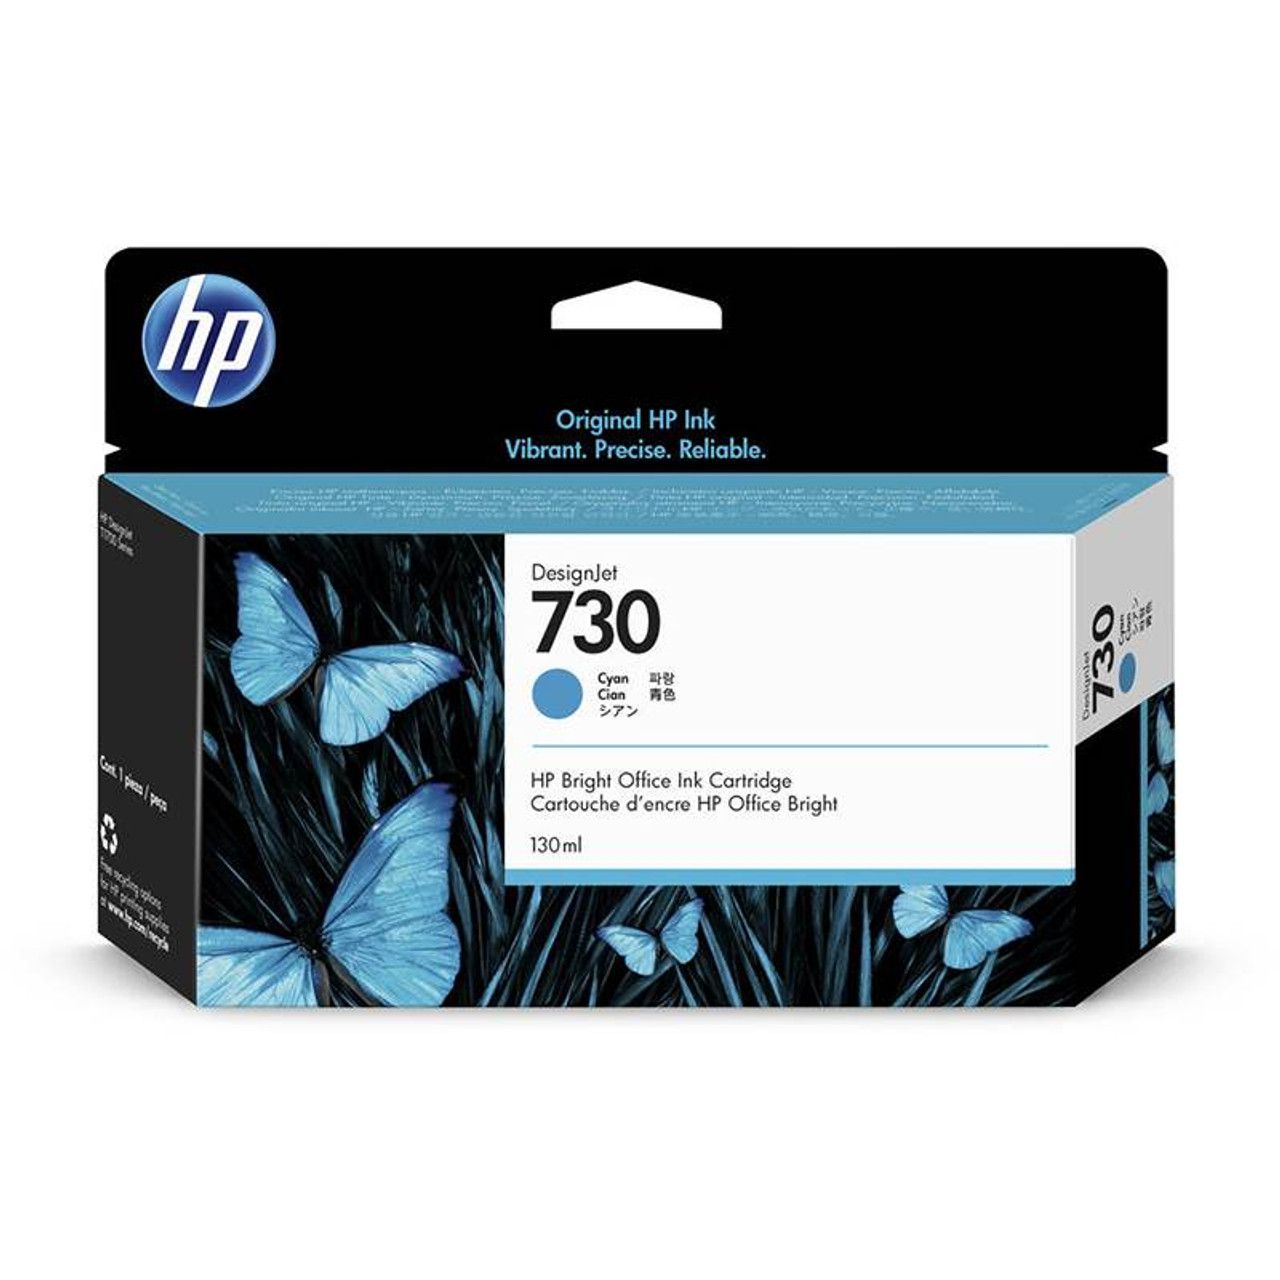 Image for HP730 130ML DesignJet Ink Cartridge - Cyan (P2V62A) CX Computer Superstore